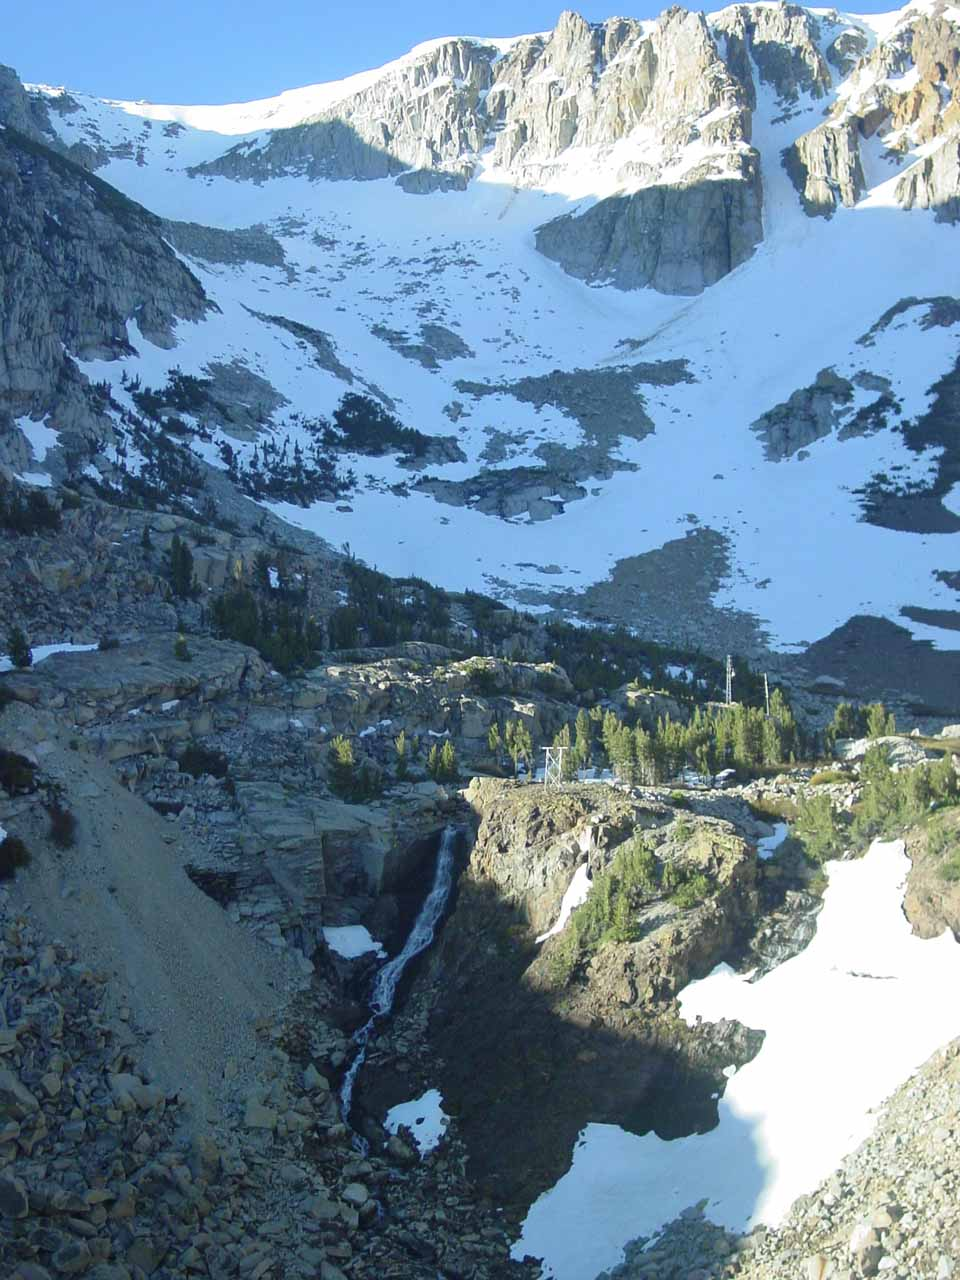 A cascade draining Ellery Lake near the Tioga Pass